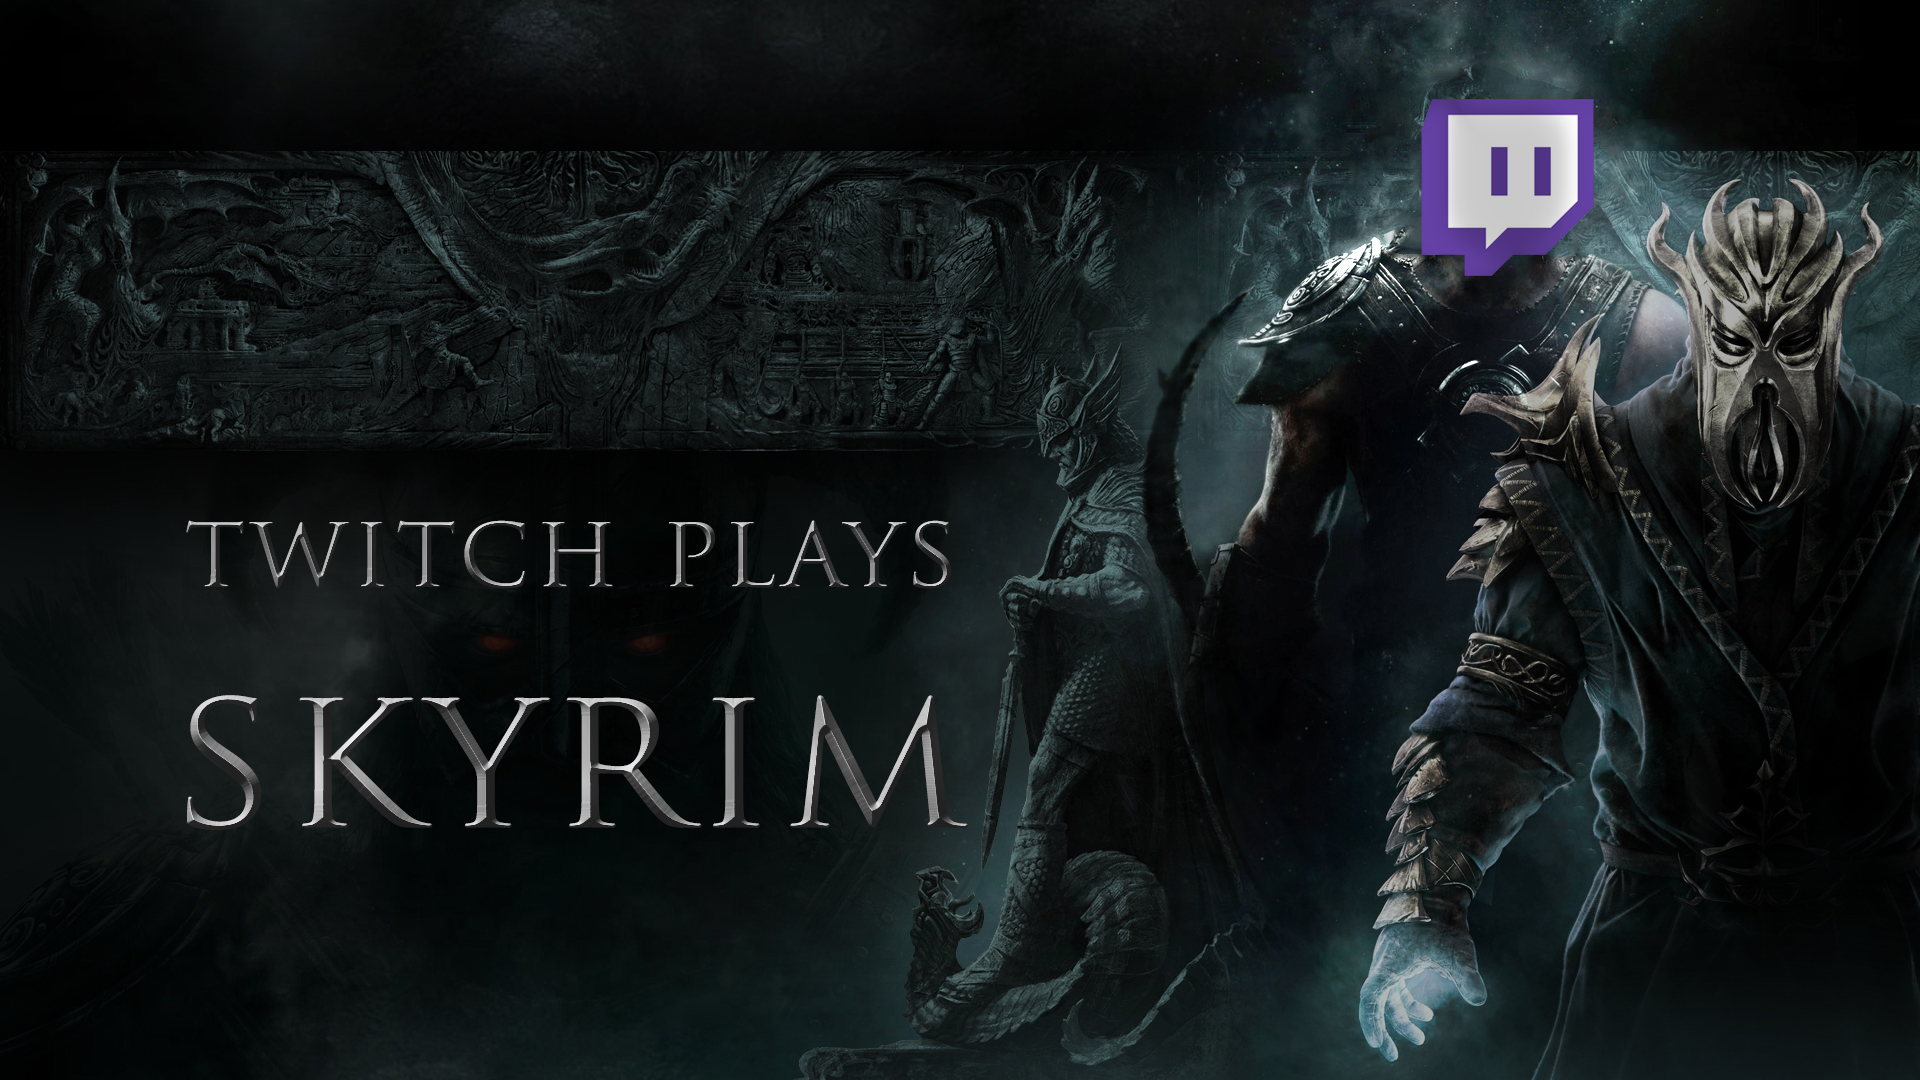 Twitchplaysskyrim wallpaper